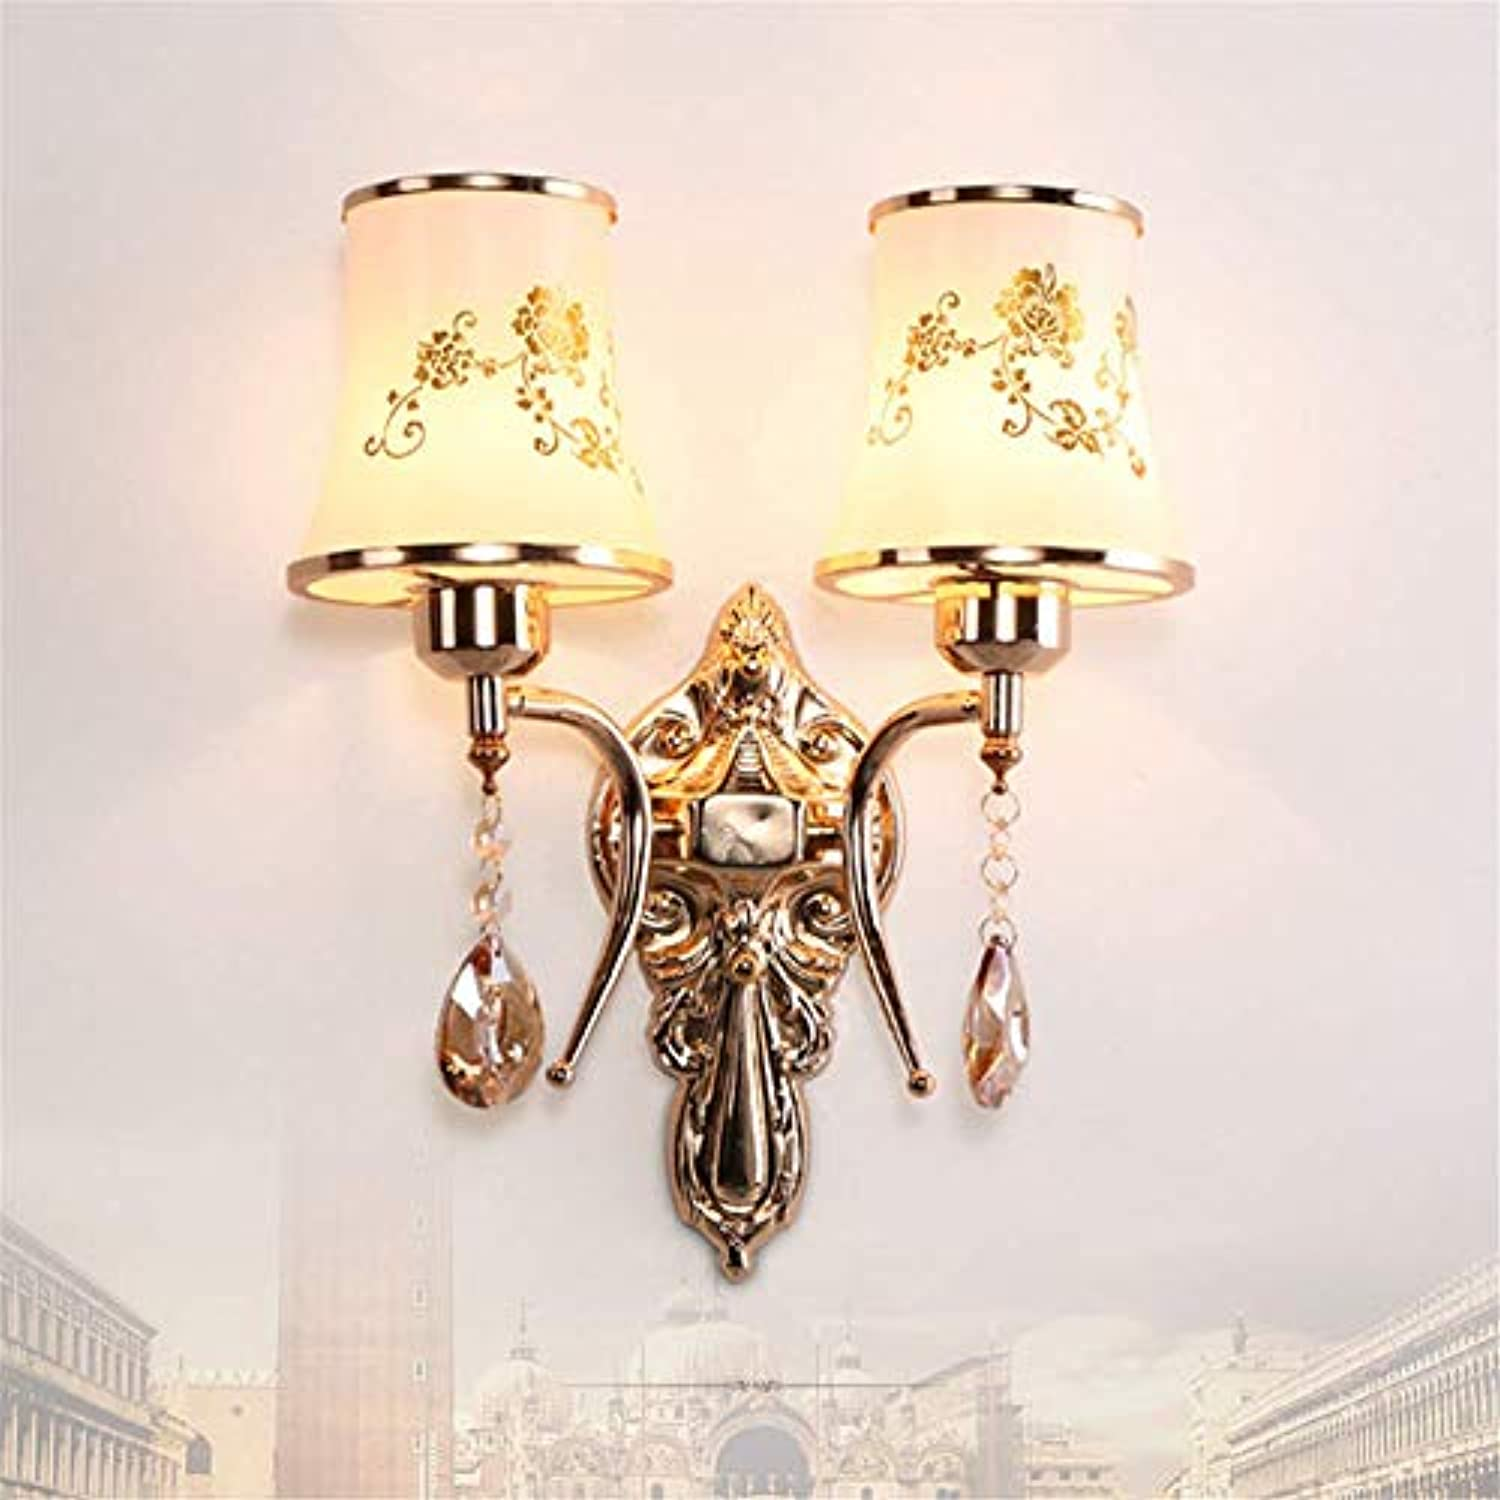 Wall lamp fashion wall lamp new modern living room wall lamp balcony creative warm wall lamp bedside lamp bedroom wall lamp 35  30cm,double head A,no light source